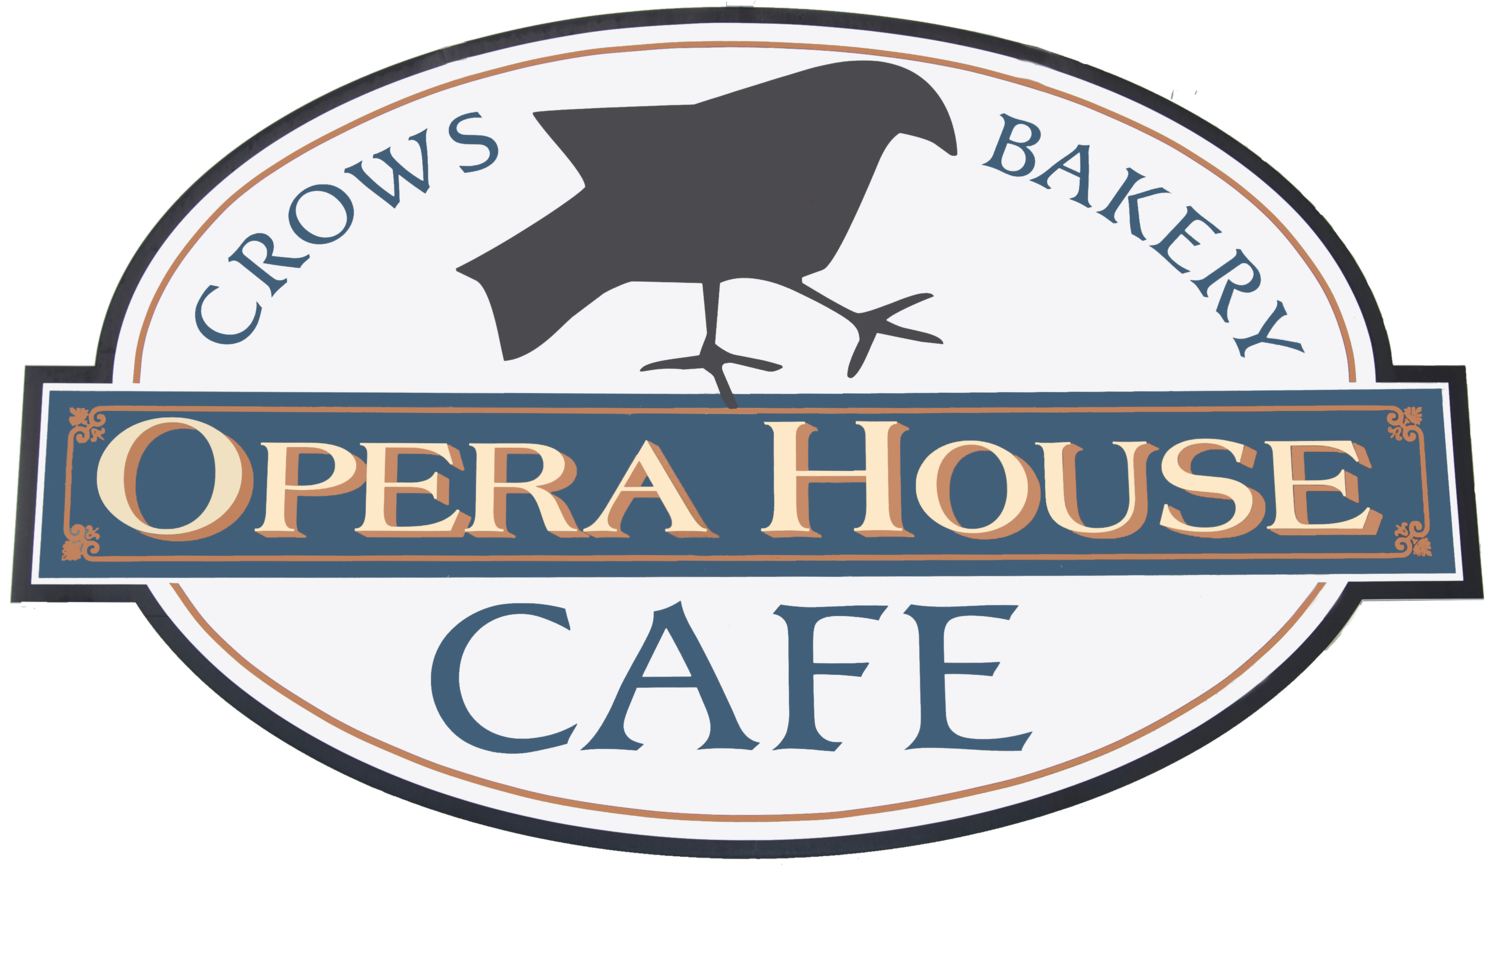 Crows Bakery & Opera House Cafe